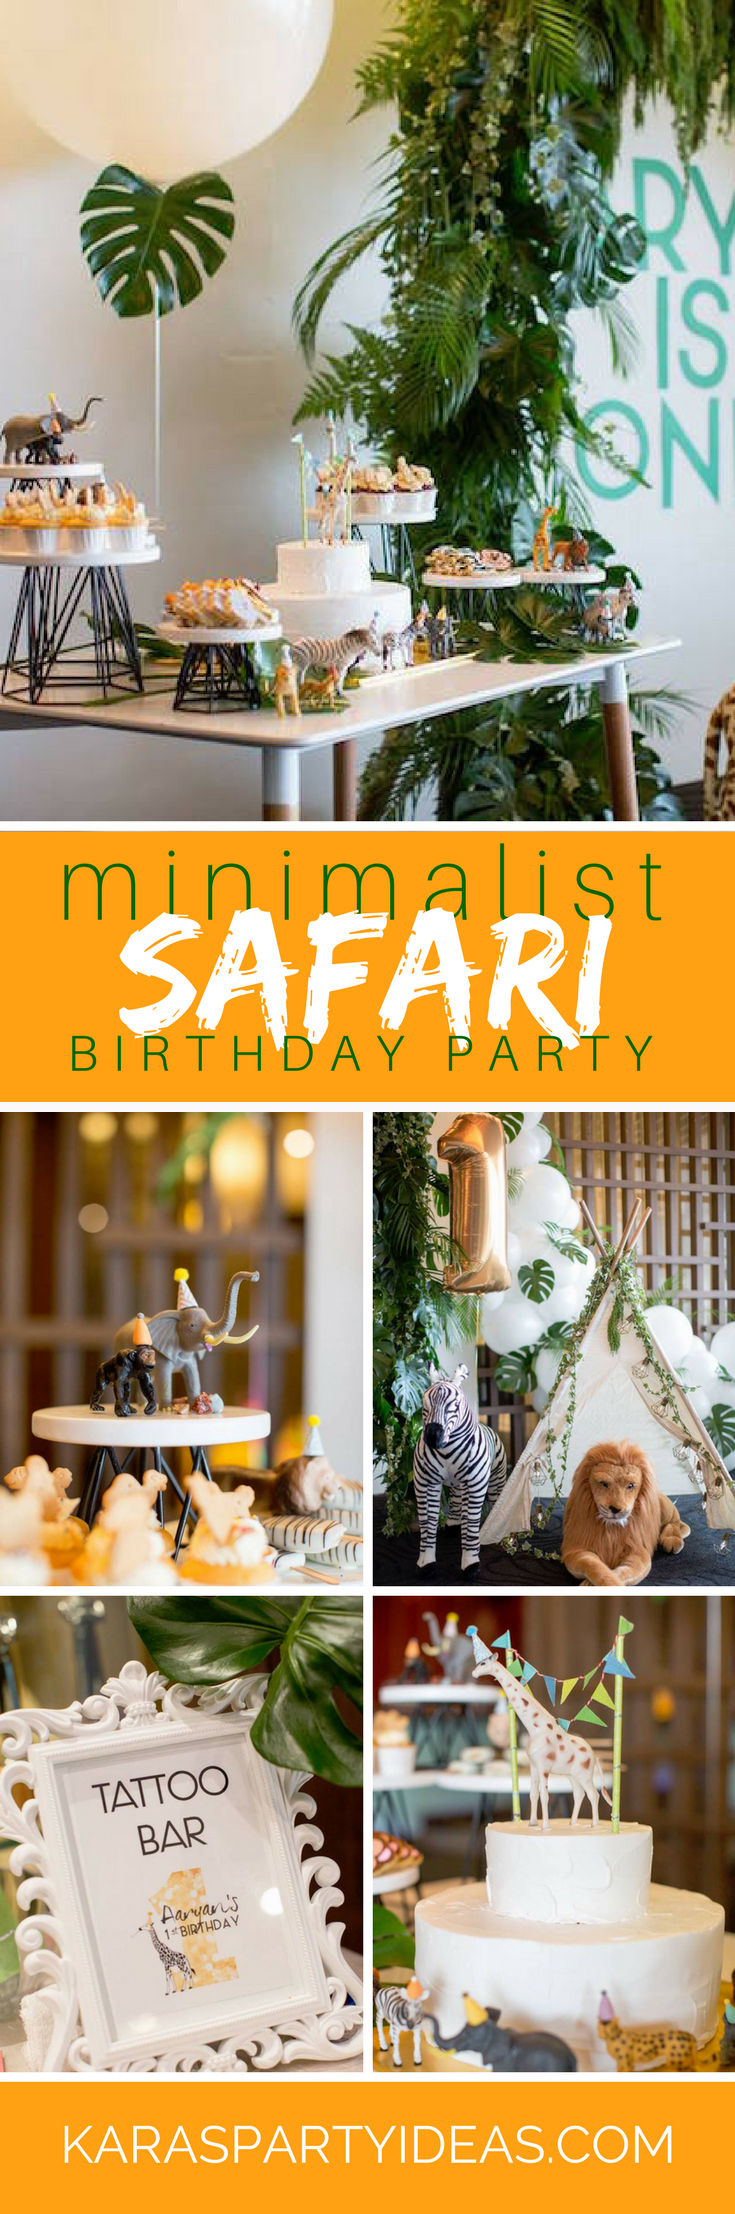 Minimalist Safari Birthday Party via Kara's Party Ideas - KarasPartyIdeas.com